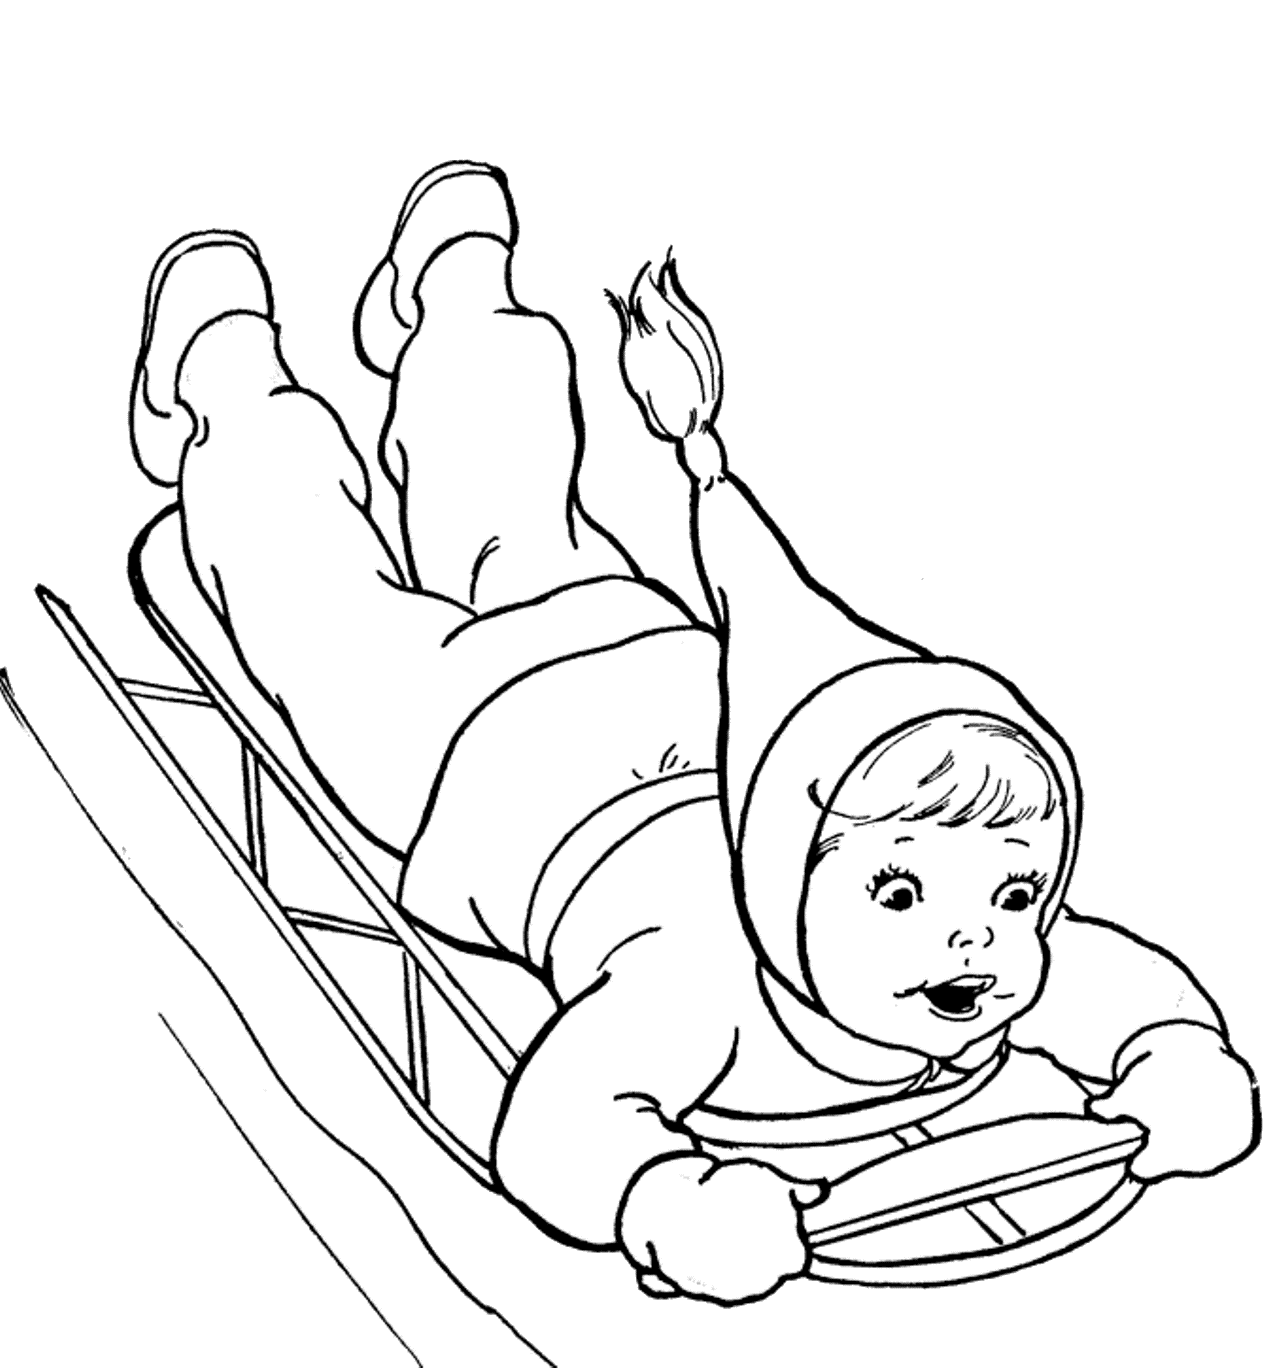 Sports Photograph Coloring Pages Kids Winter Sports Coloring